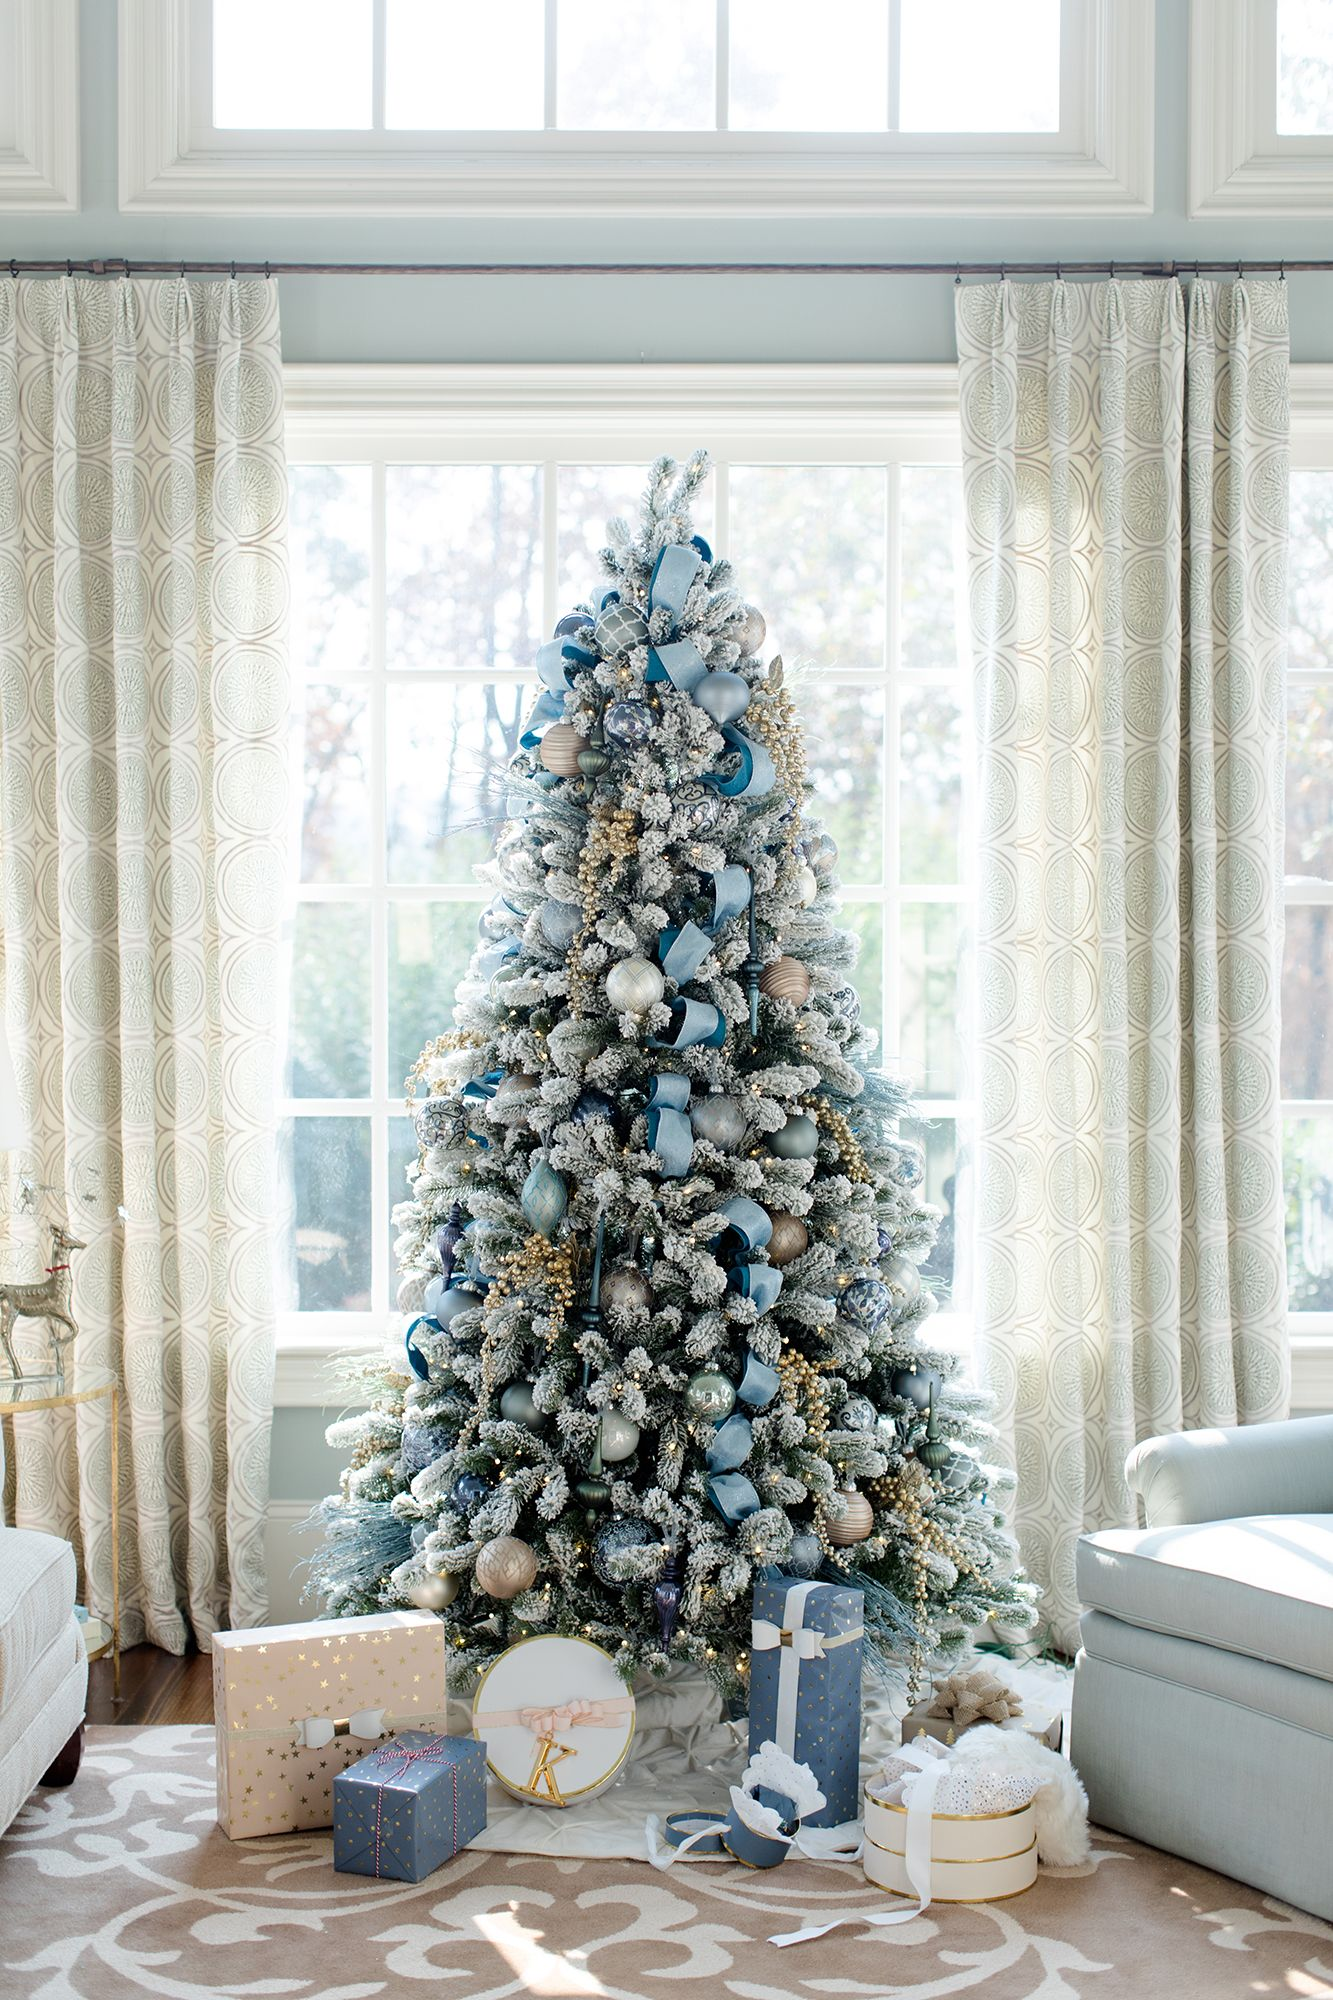 Stunning Christmas Tree Ideas 2018 - Best Christmas Tree Decorating Tips